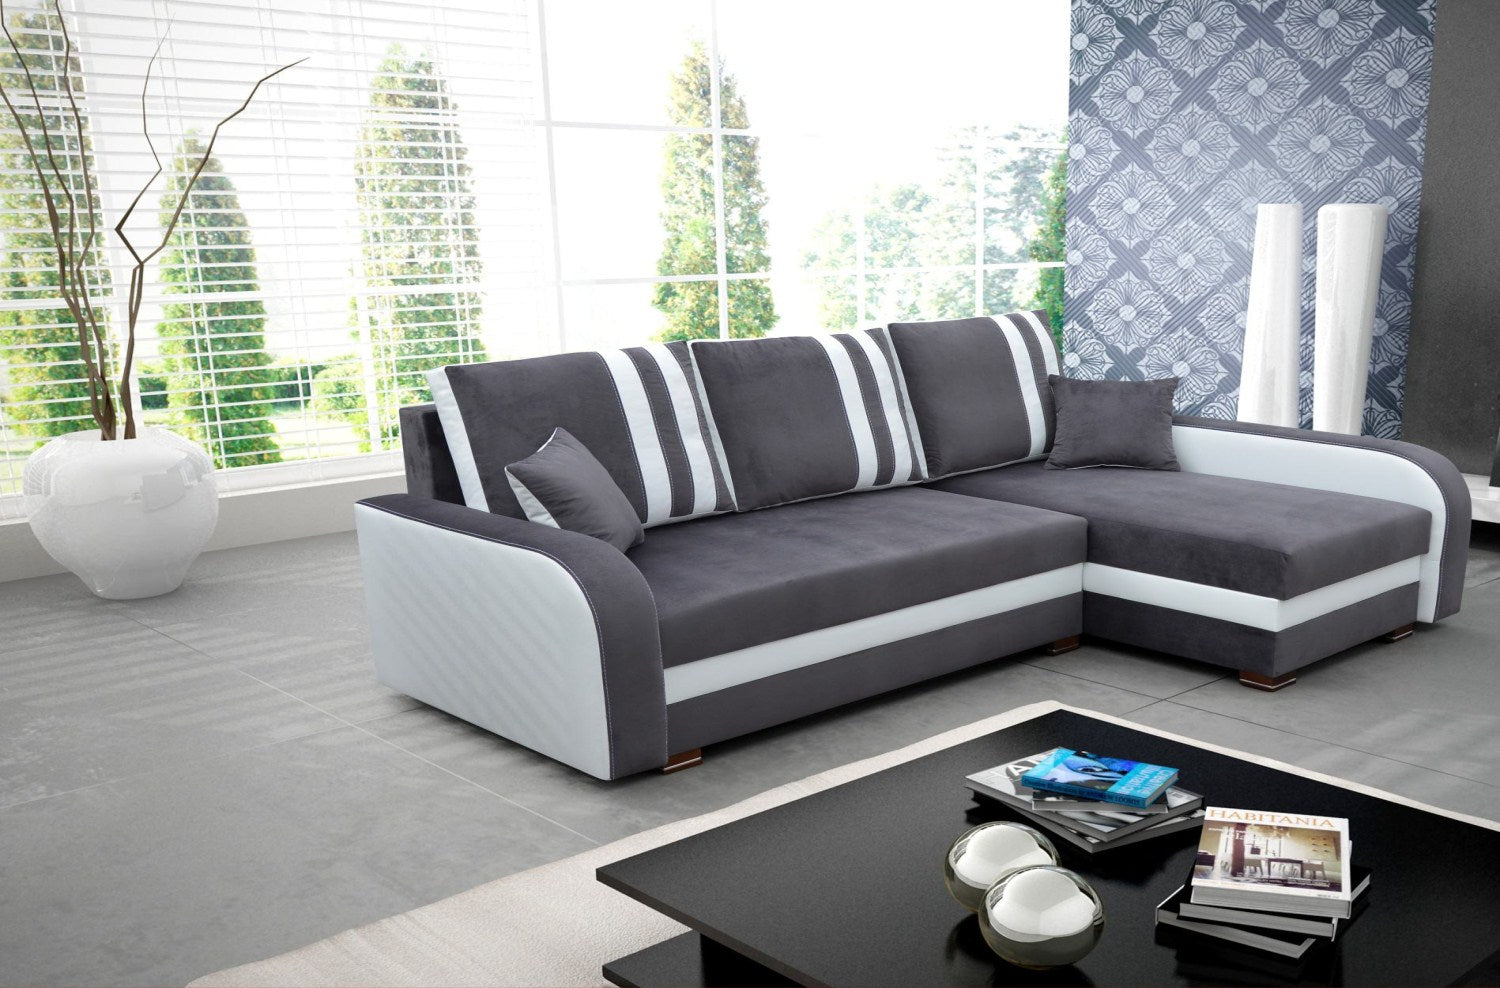 Napola Corner Sofa Bed